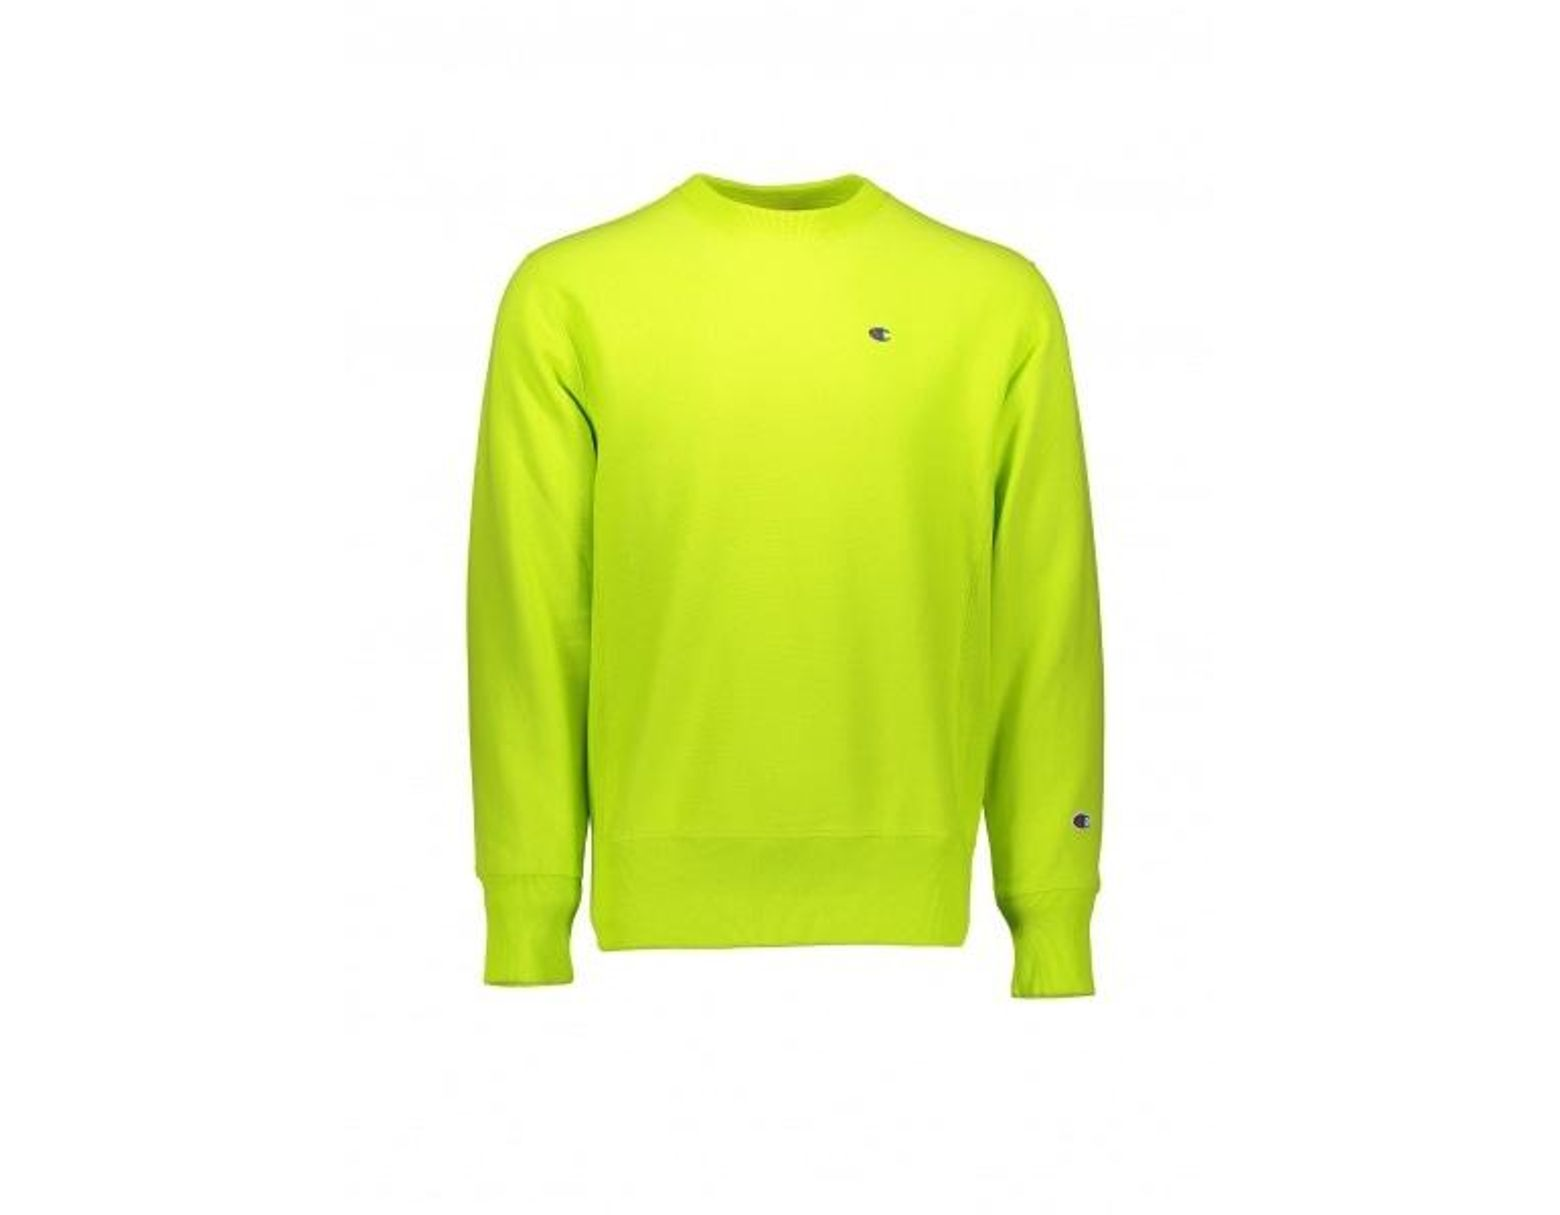 ef975a2f Champion Reverse Weave Sweatshirt in Green for Men - Lyst